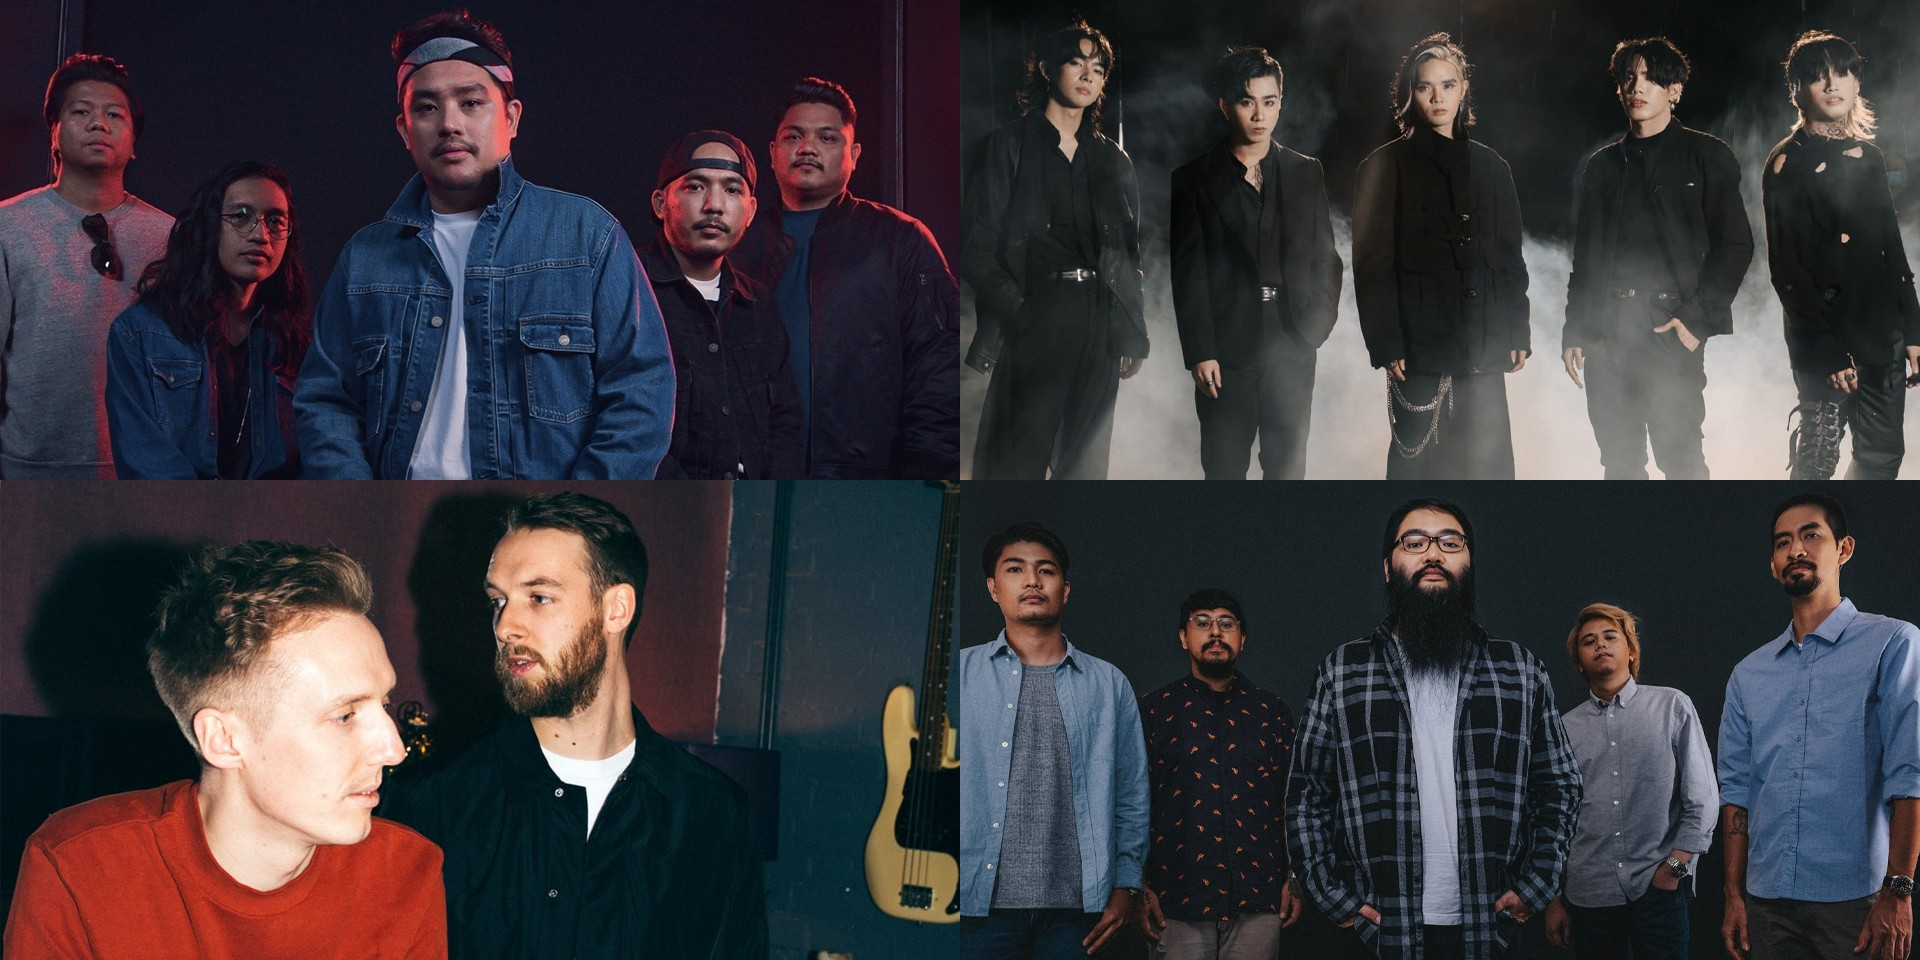 HONNE, SB19, December Avenue, I Belong to the Zoo, and more to perform at G Music Fest this weekend